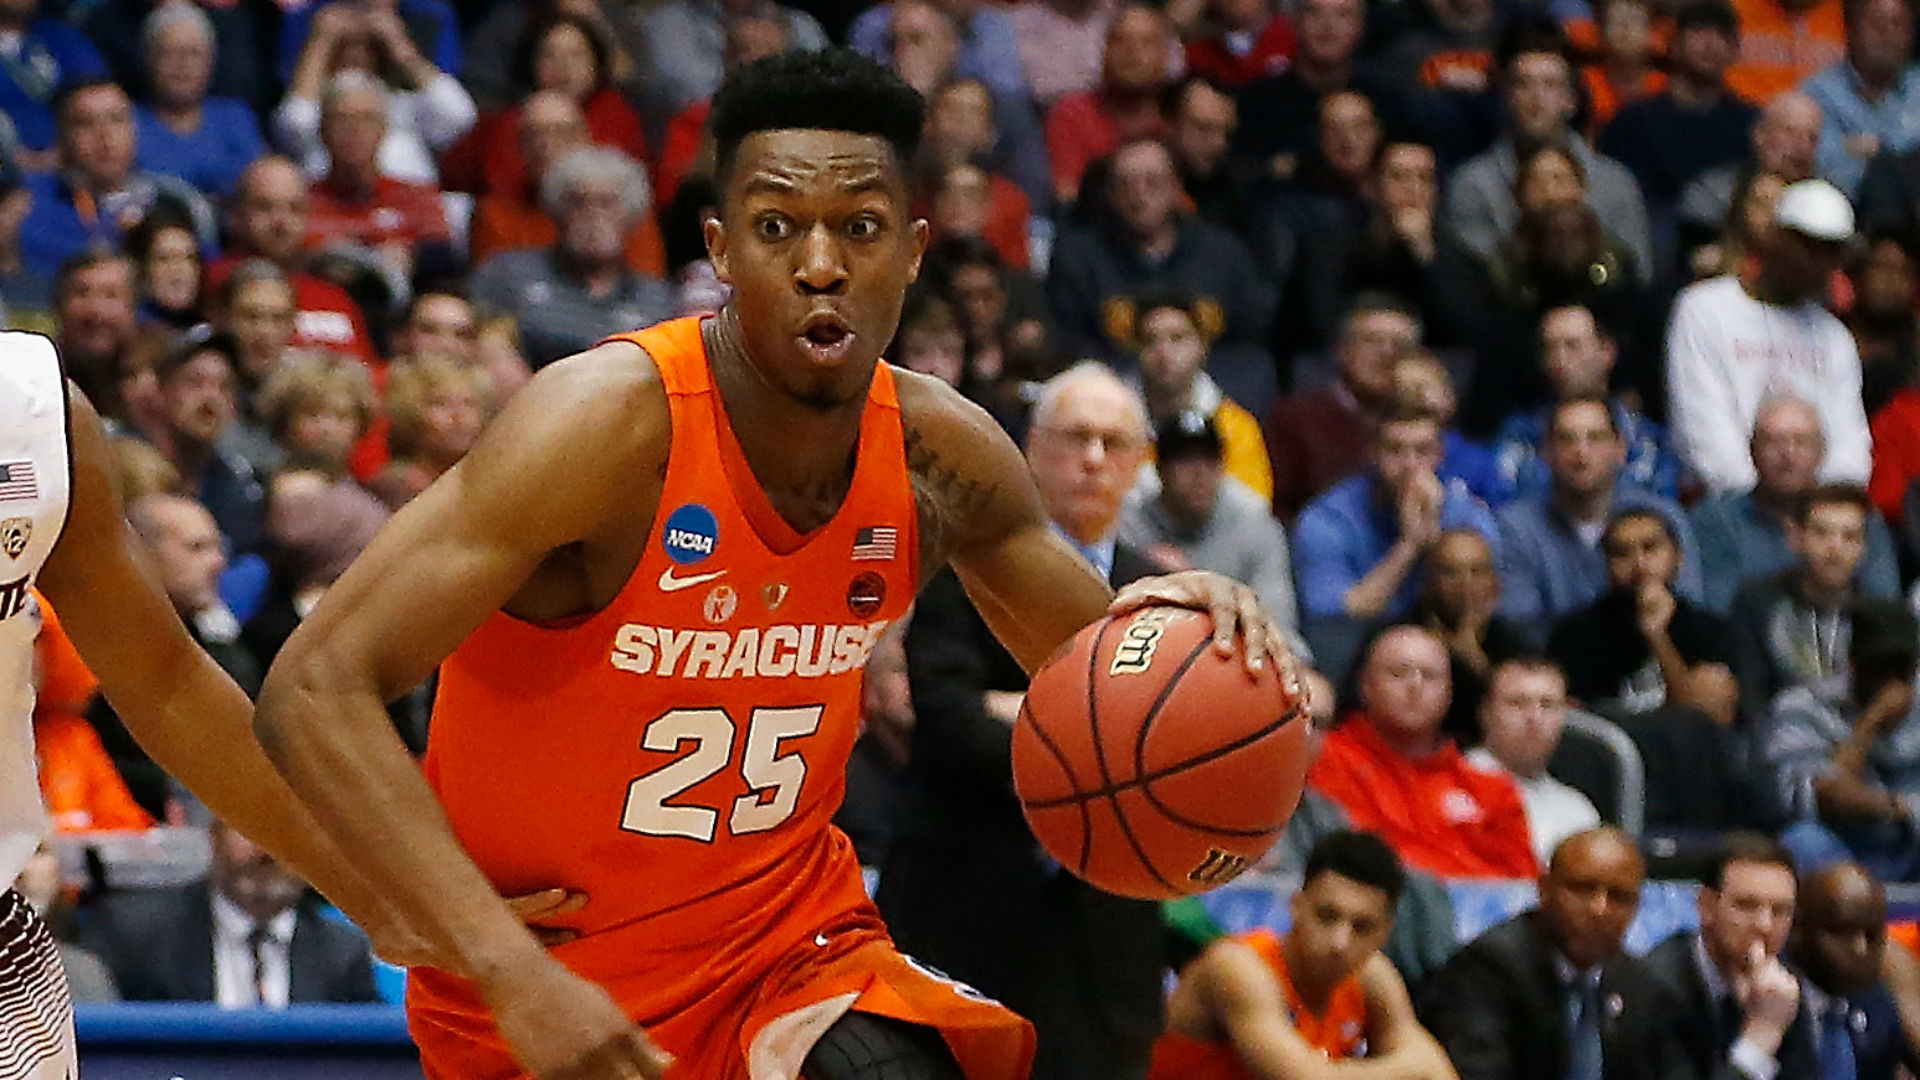 Syracuse tops TCU, 57-52, to advance again in Tournament